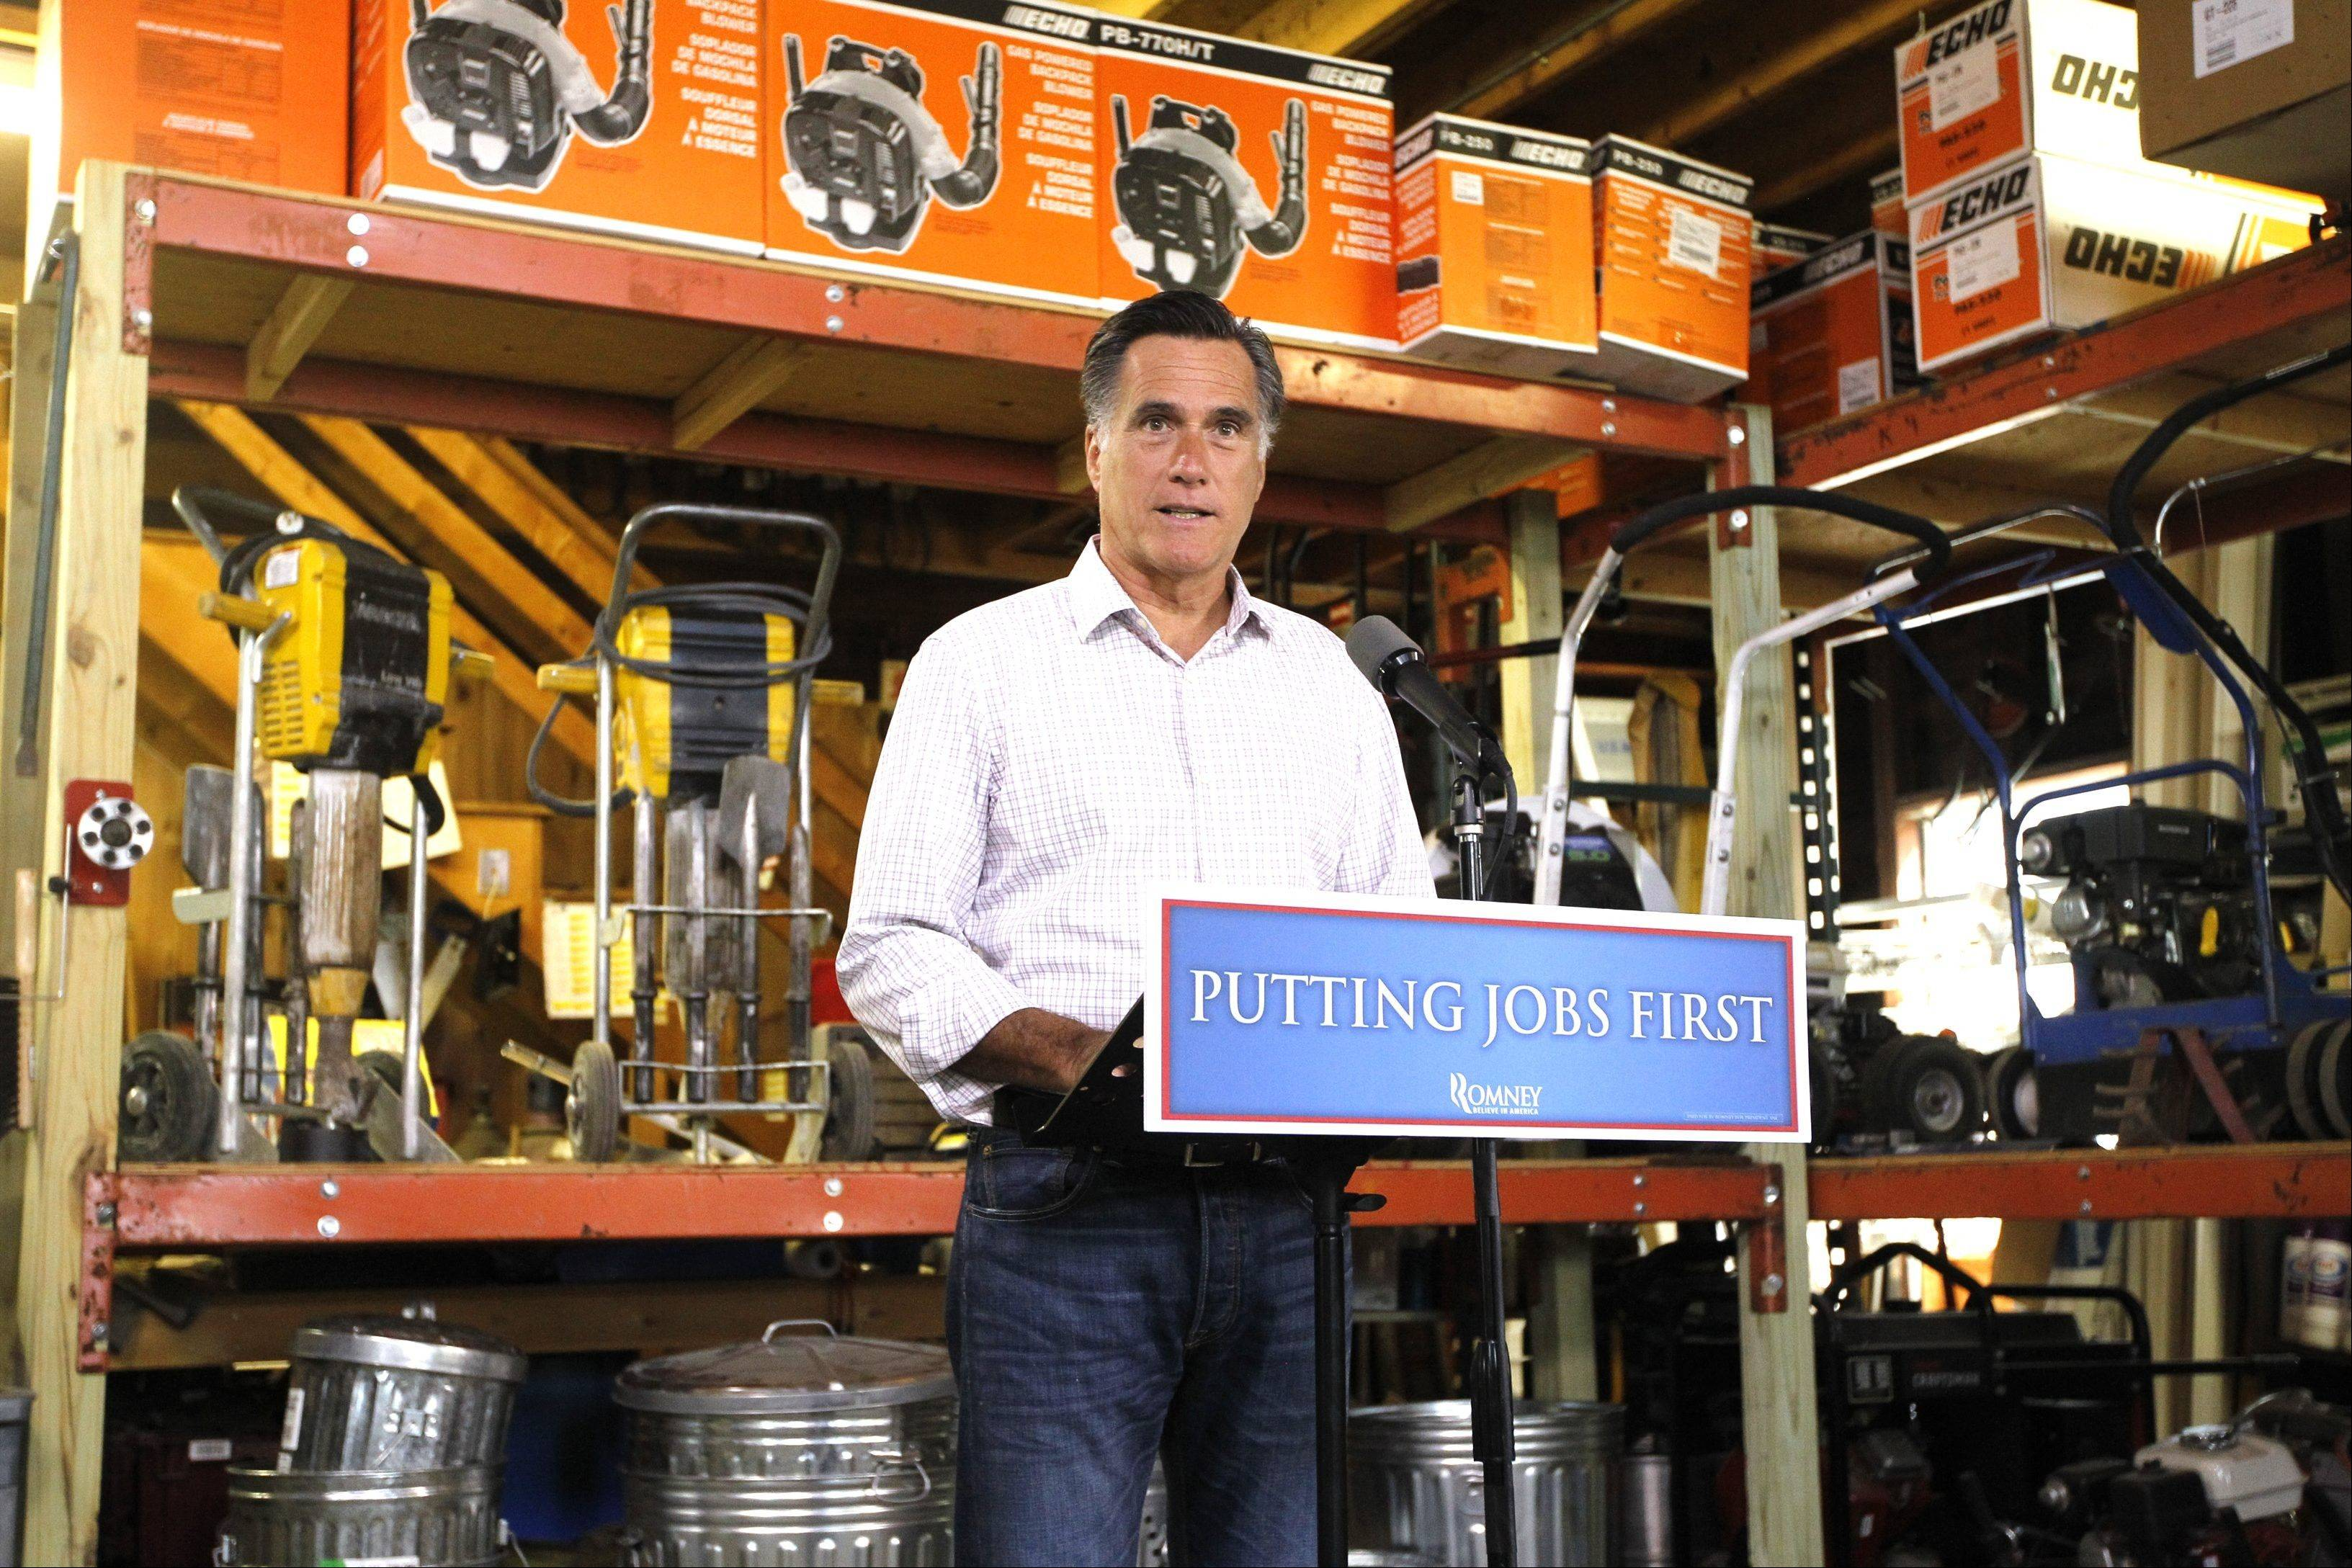 Republican presidential candidate, former Massachusetts Gov. Mitt Romney speaks about job numbers, Friday, July 6, 2012, at Bradley's Hardware in Wolfeboro, N.H.